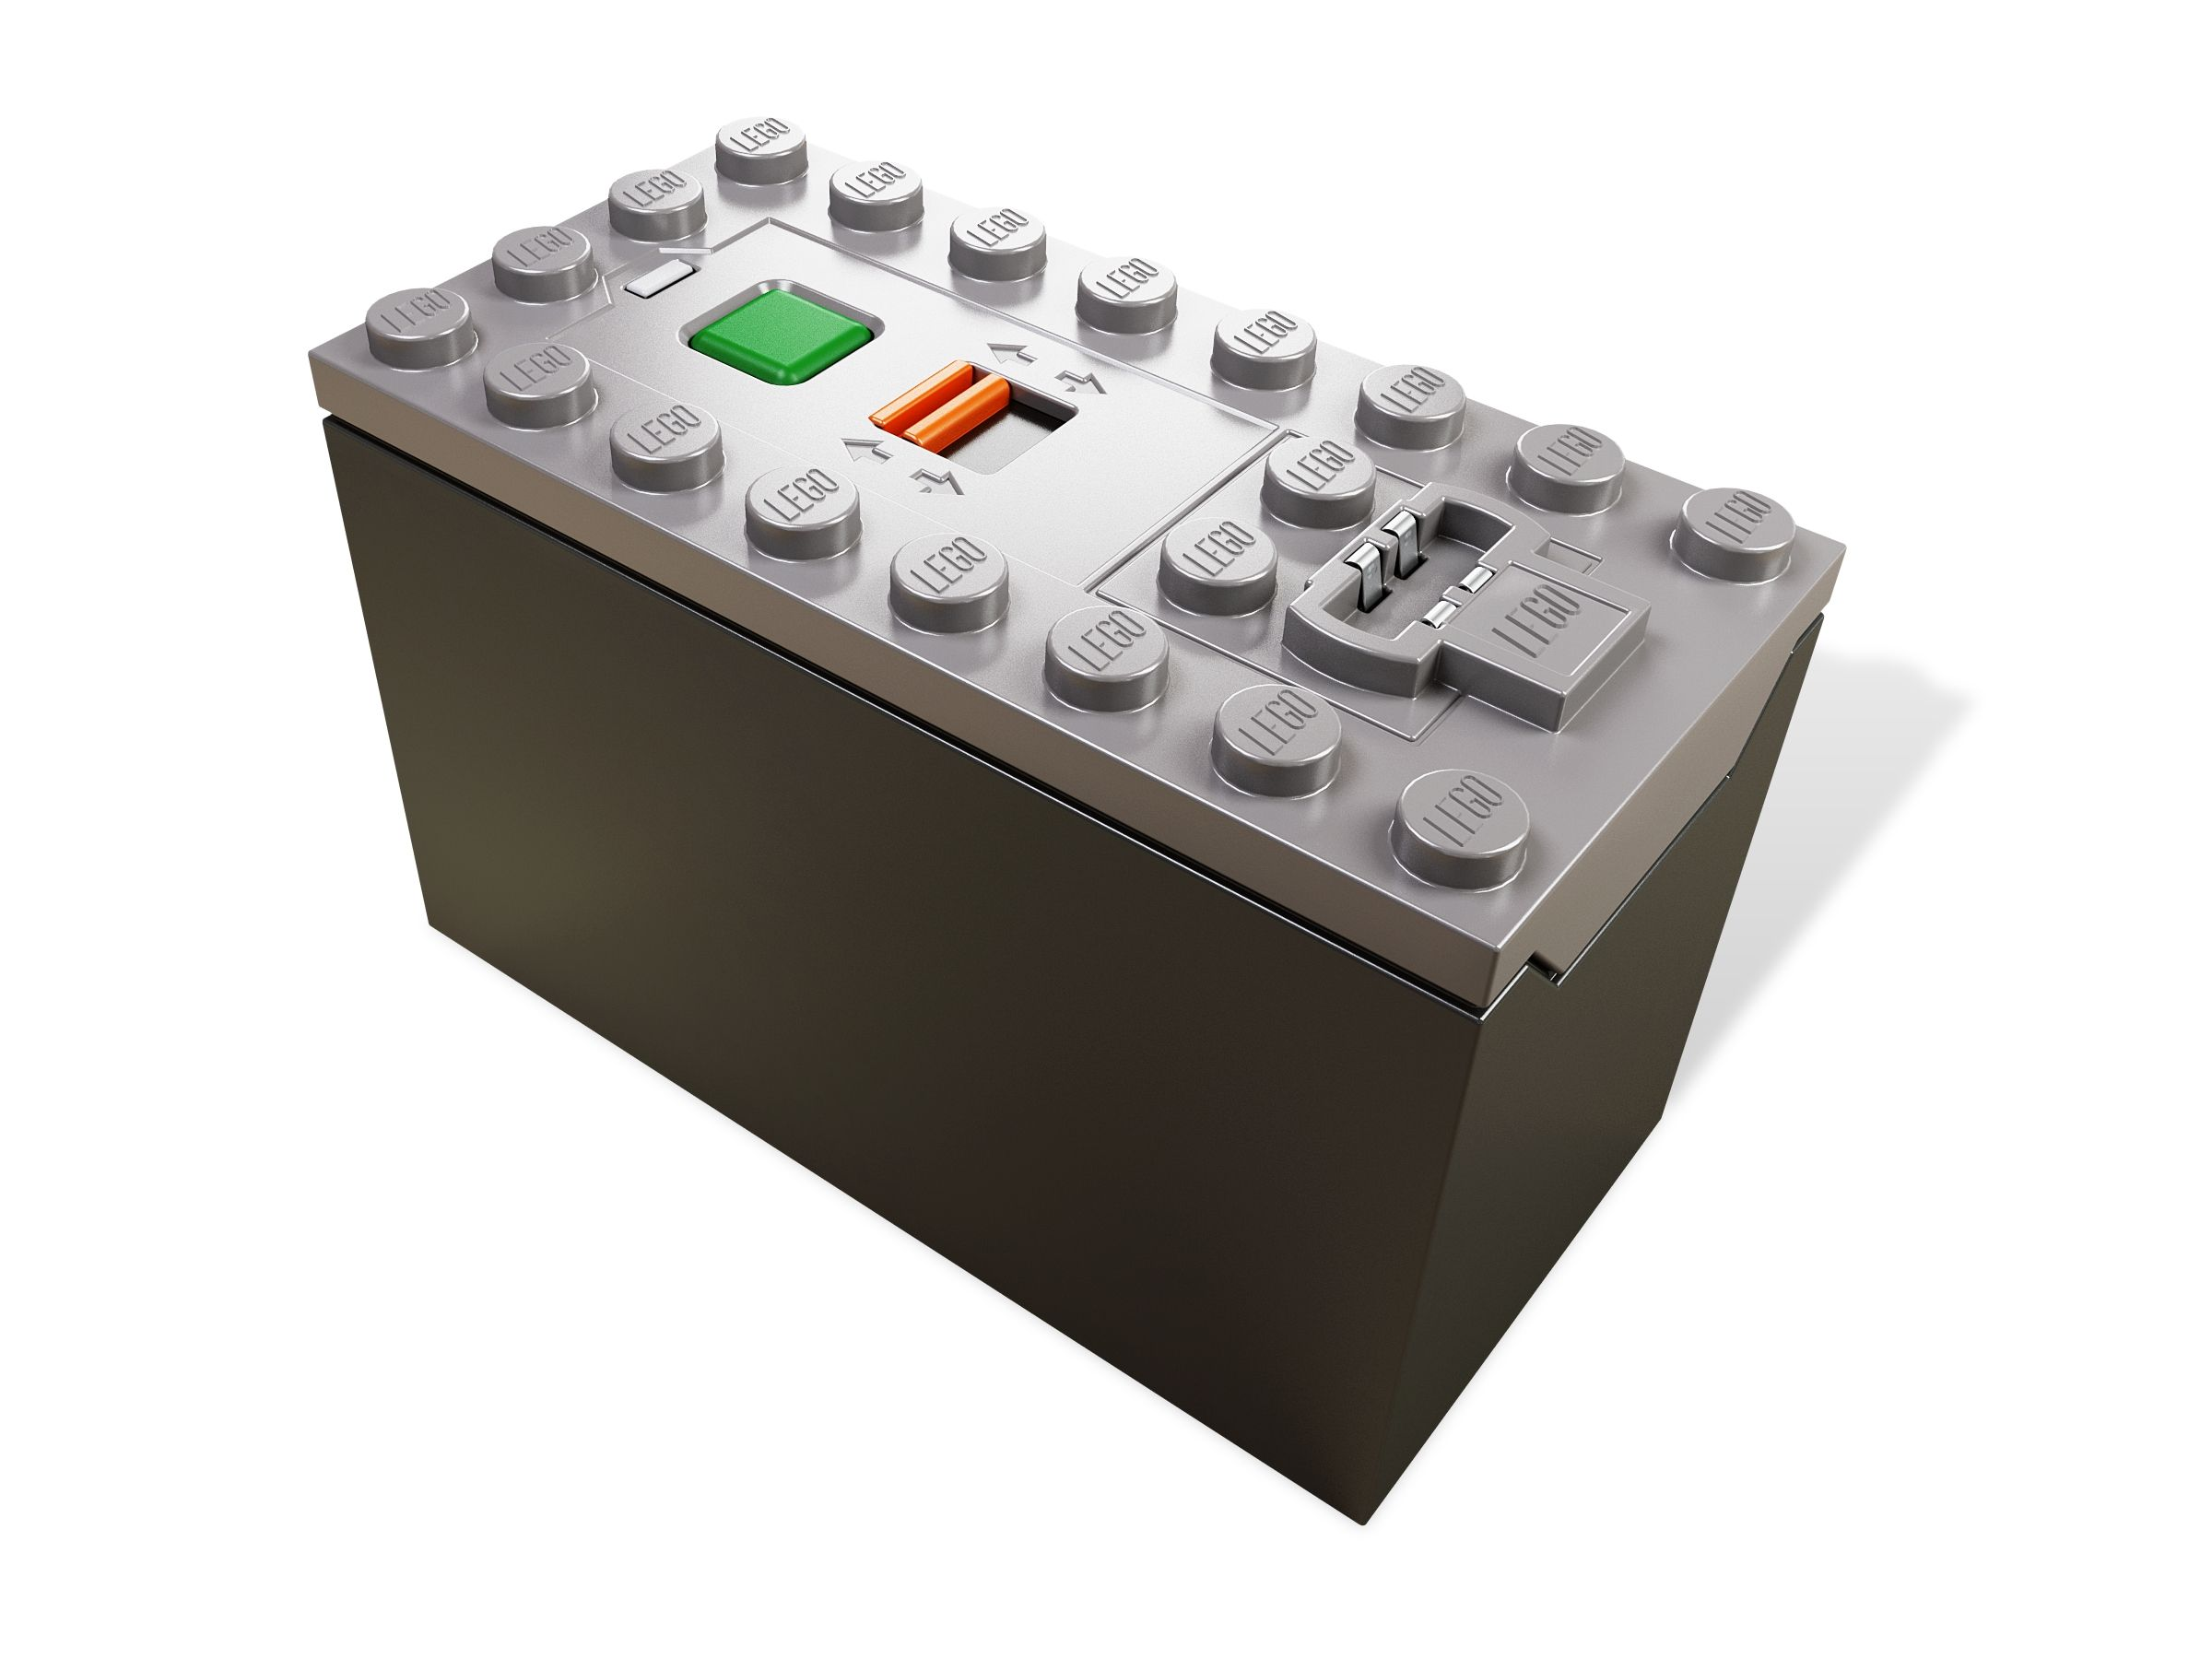 Lego Power Functions Aaa Battery Box Ad Functions Affiliate Power Lego Box Lego Lego Mindstorms Lego Store